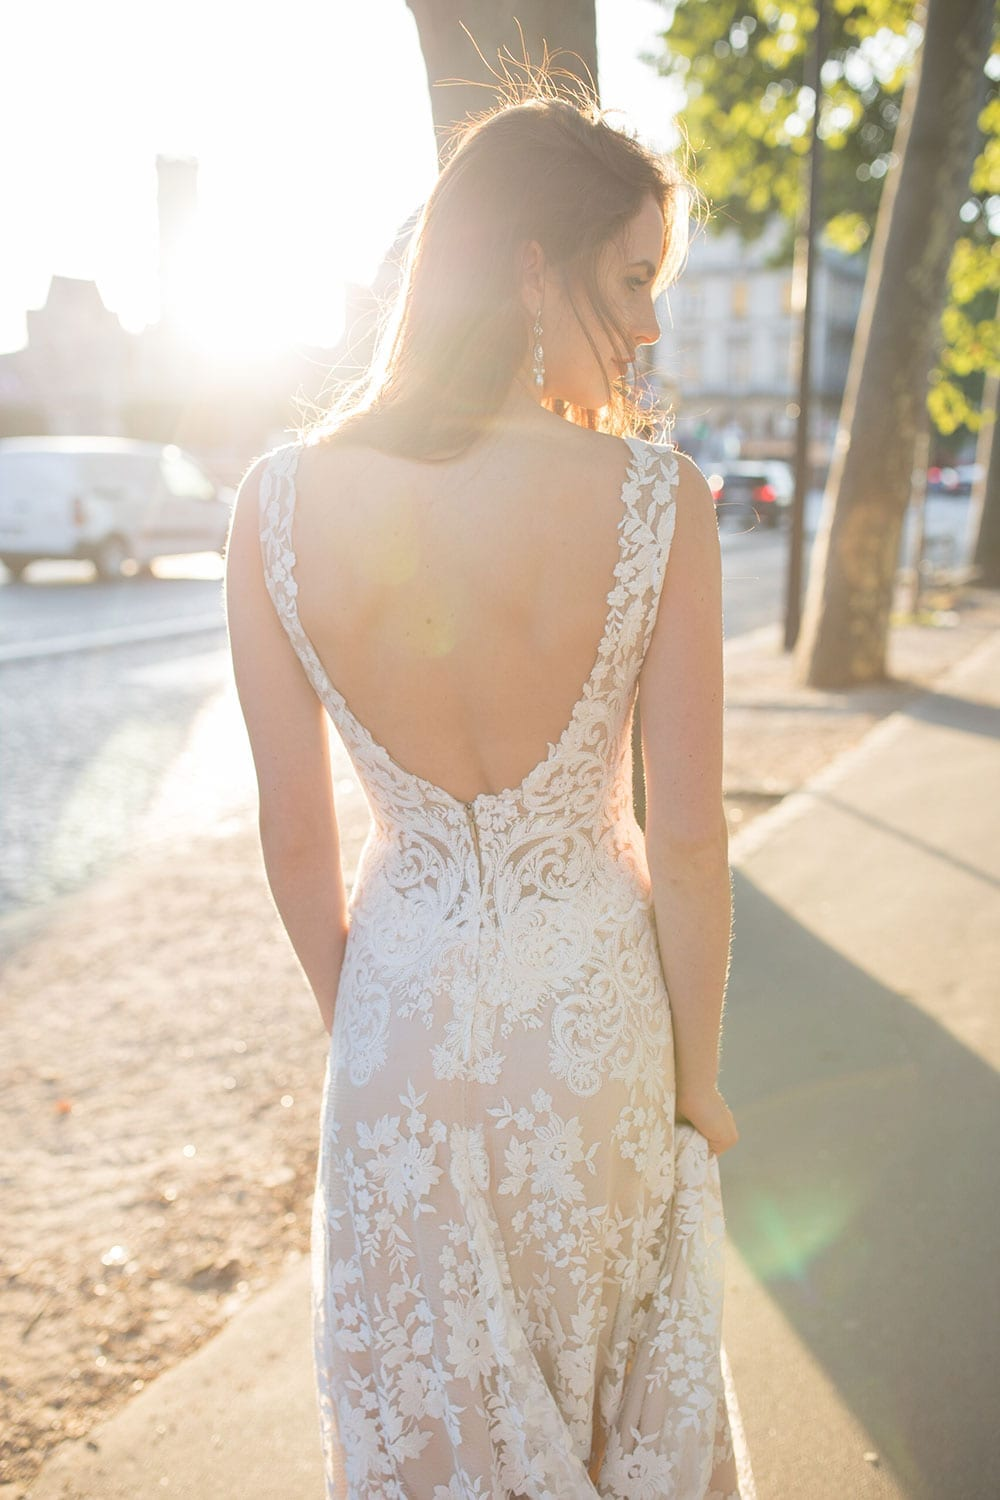 Model wearing Vinka Design Kerrie Wedding Dress, a V-Neck Lace Gown on Blush Silk Base with Low Back close up of the bare back with the low dress